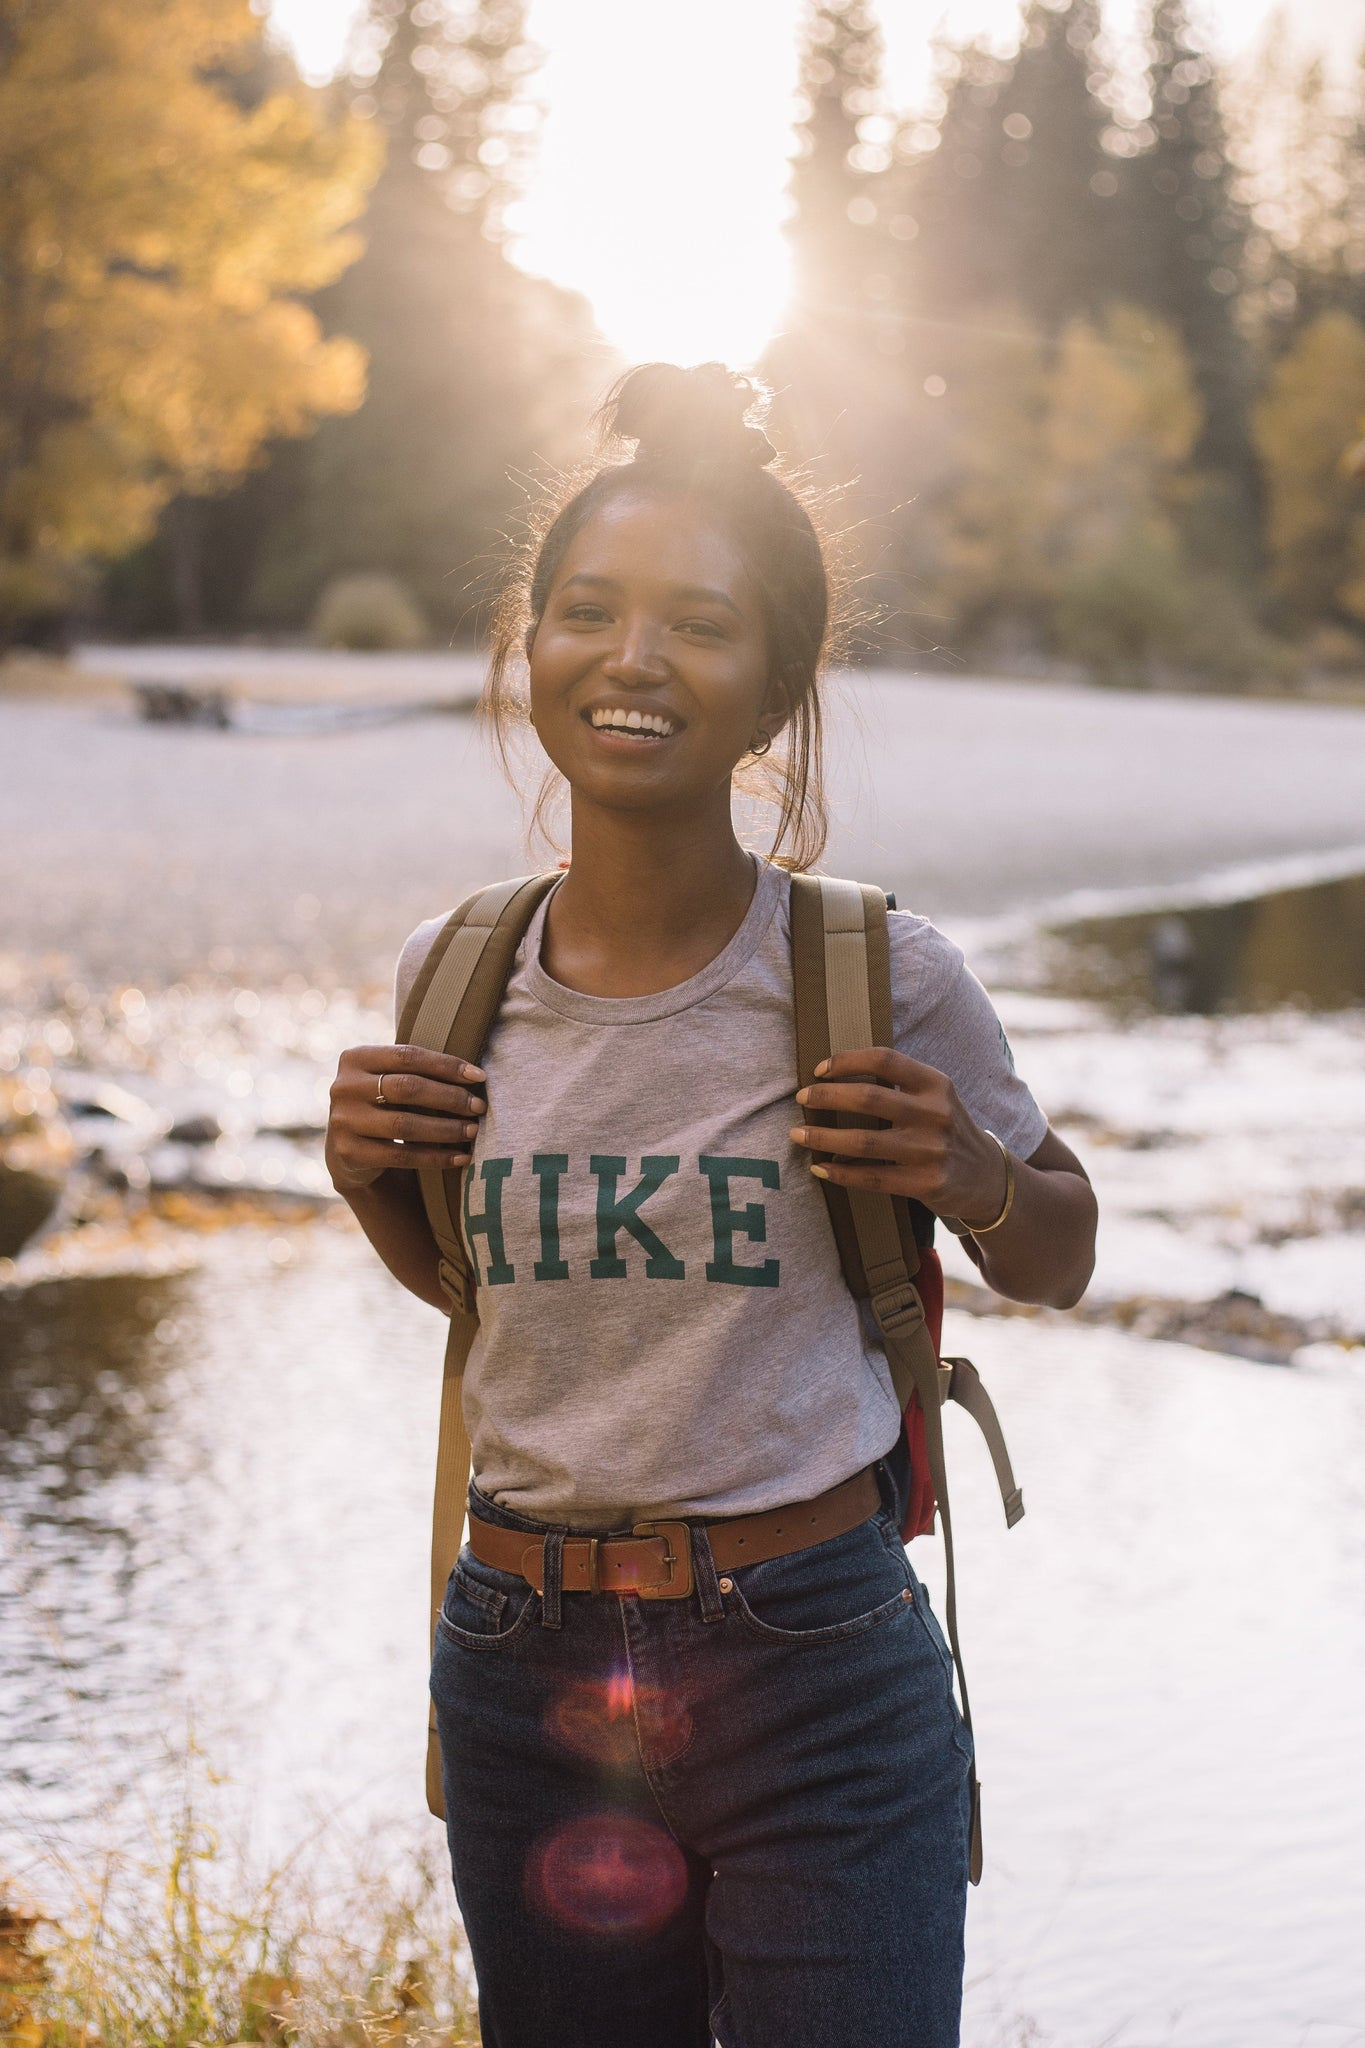 The Parks Hike Tee - The Parks Apparel